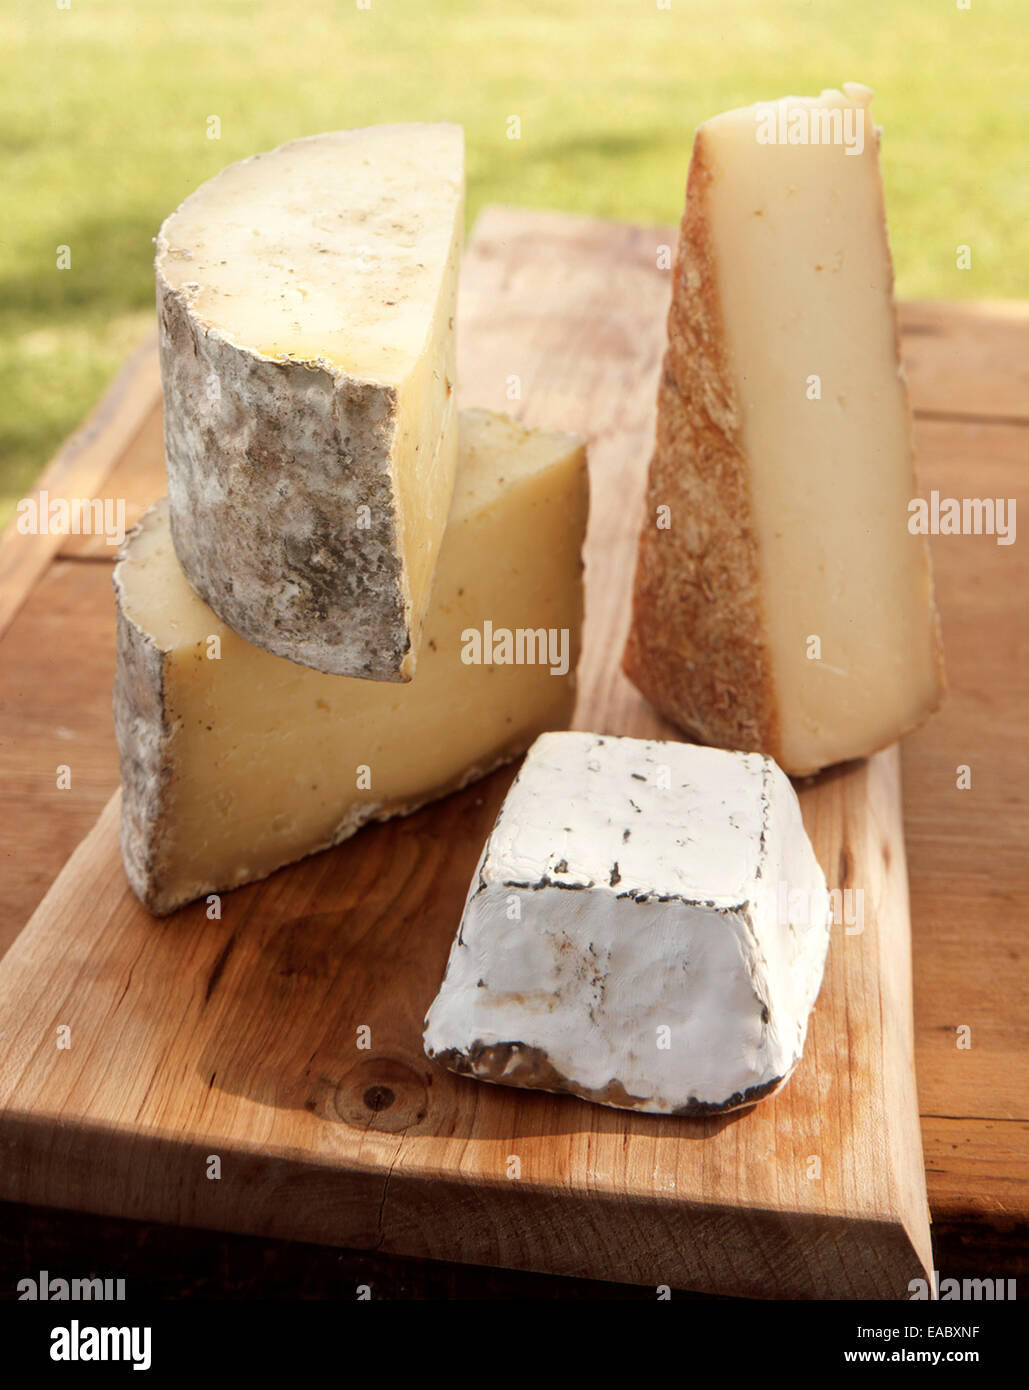 cut cheeses on cutting board - Stock Image